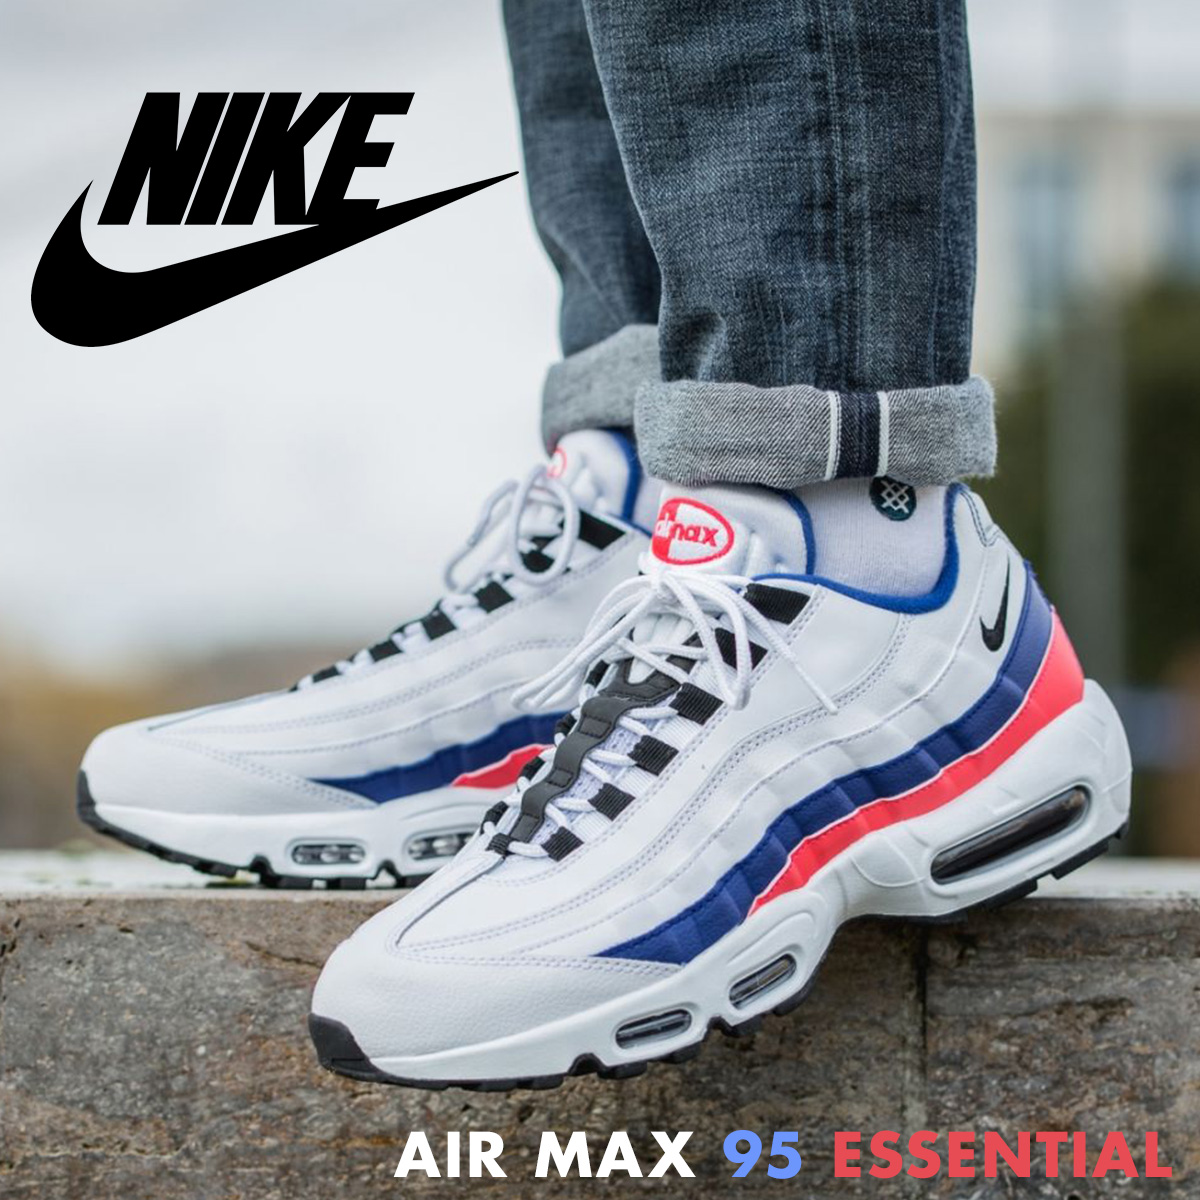 newest 6937c 9e025 ... NIKE AIR MAX 95 ESSENTIAL Kie Ney AMAX 95 essential sneakers men 749,766 -106 white ...